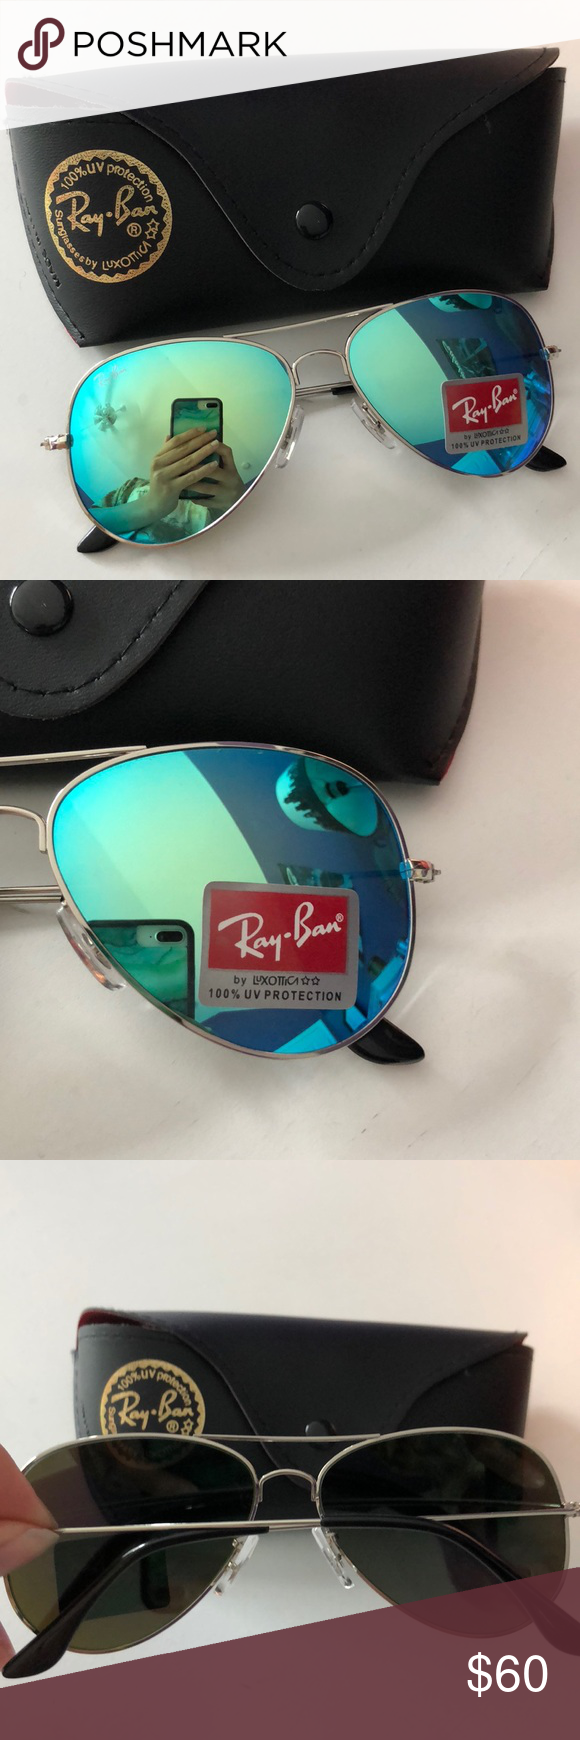 a57236cedaab How To Make Ray Ban Sticker – Southern California Weather Force